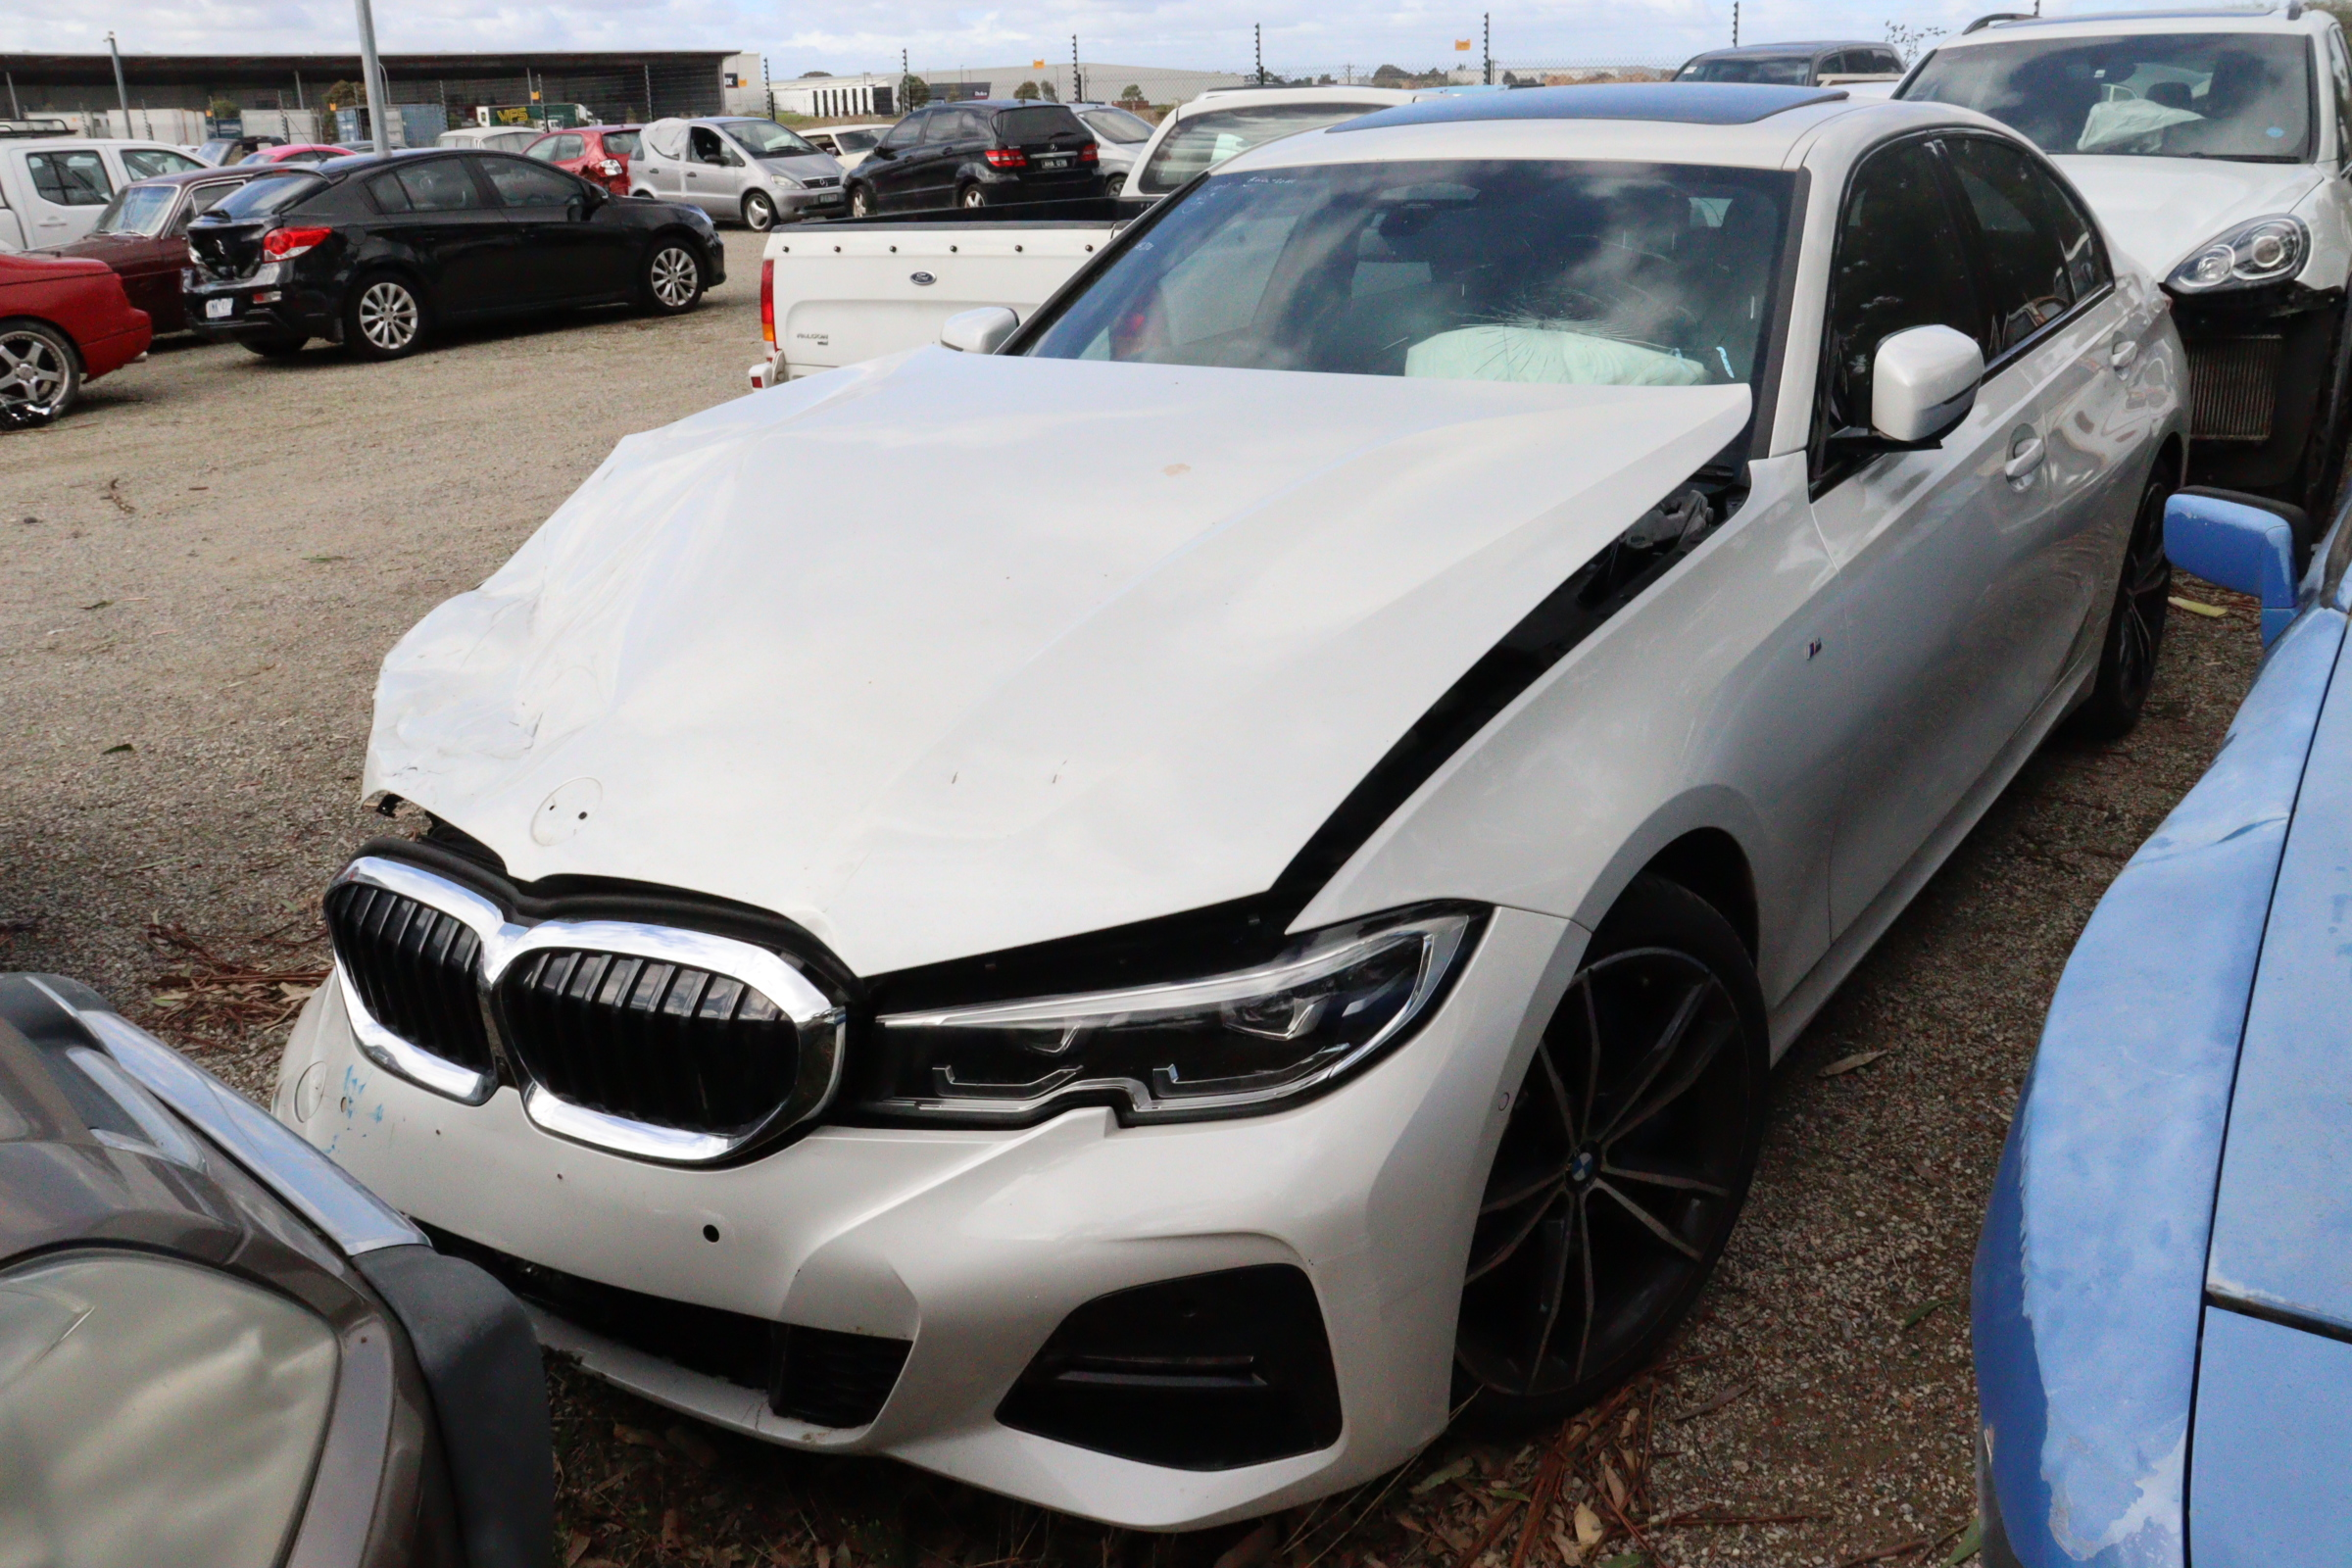 2019 BMW 3 Series 330i G20 Automatic - 8 Speed Sedan(WOVR+REP)